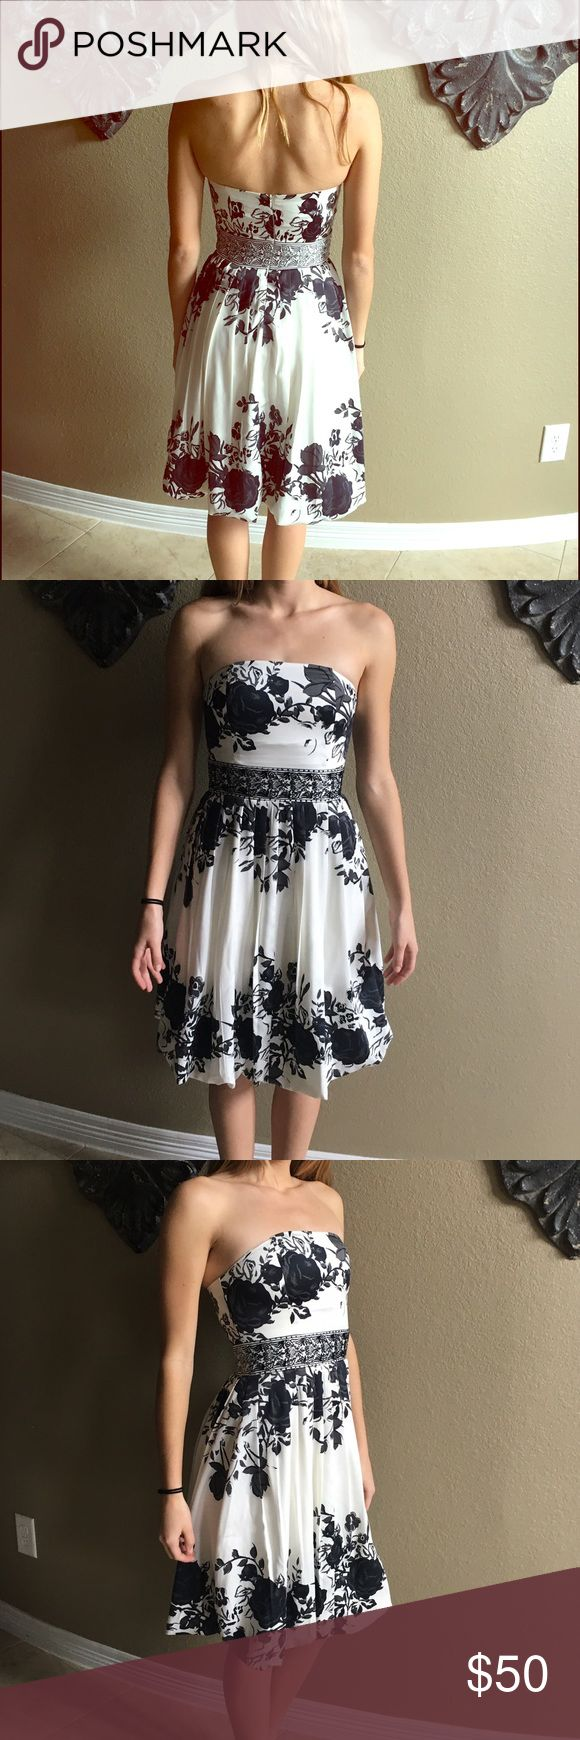 Cute party dress Black and white floral occasion dress. Super cute and in perfect condition! Dresses Strapless